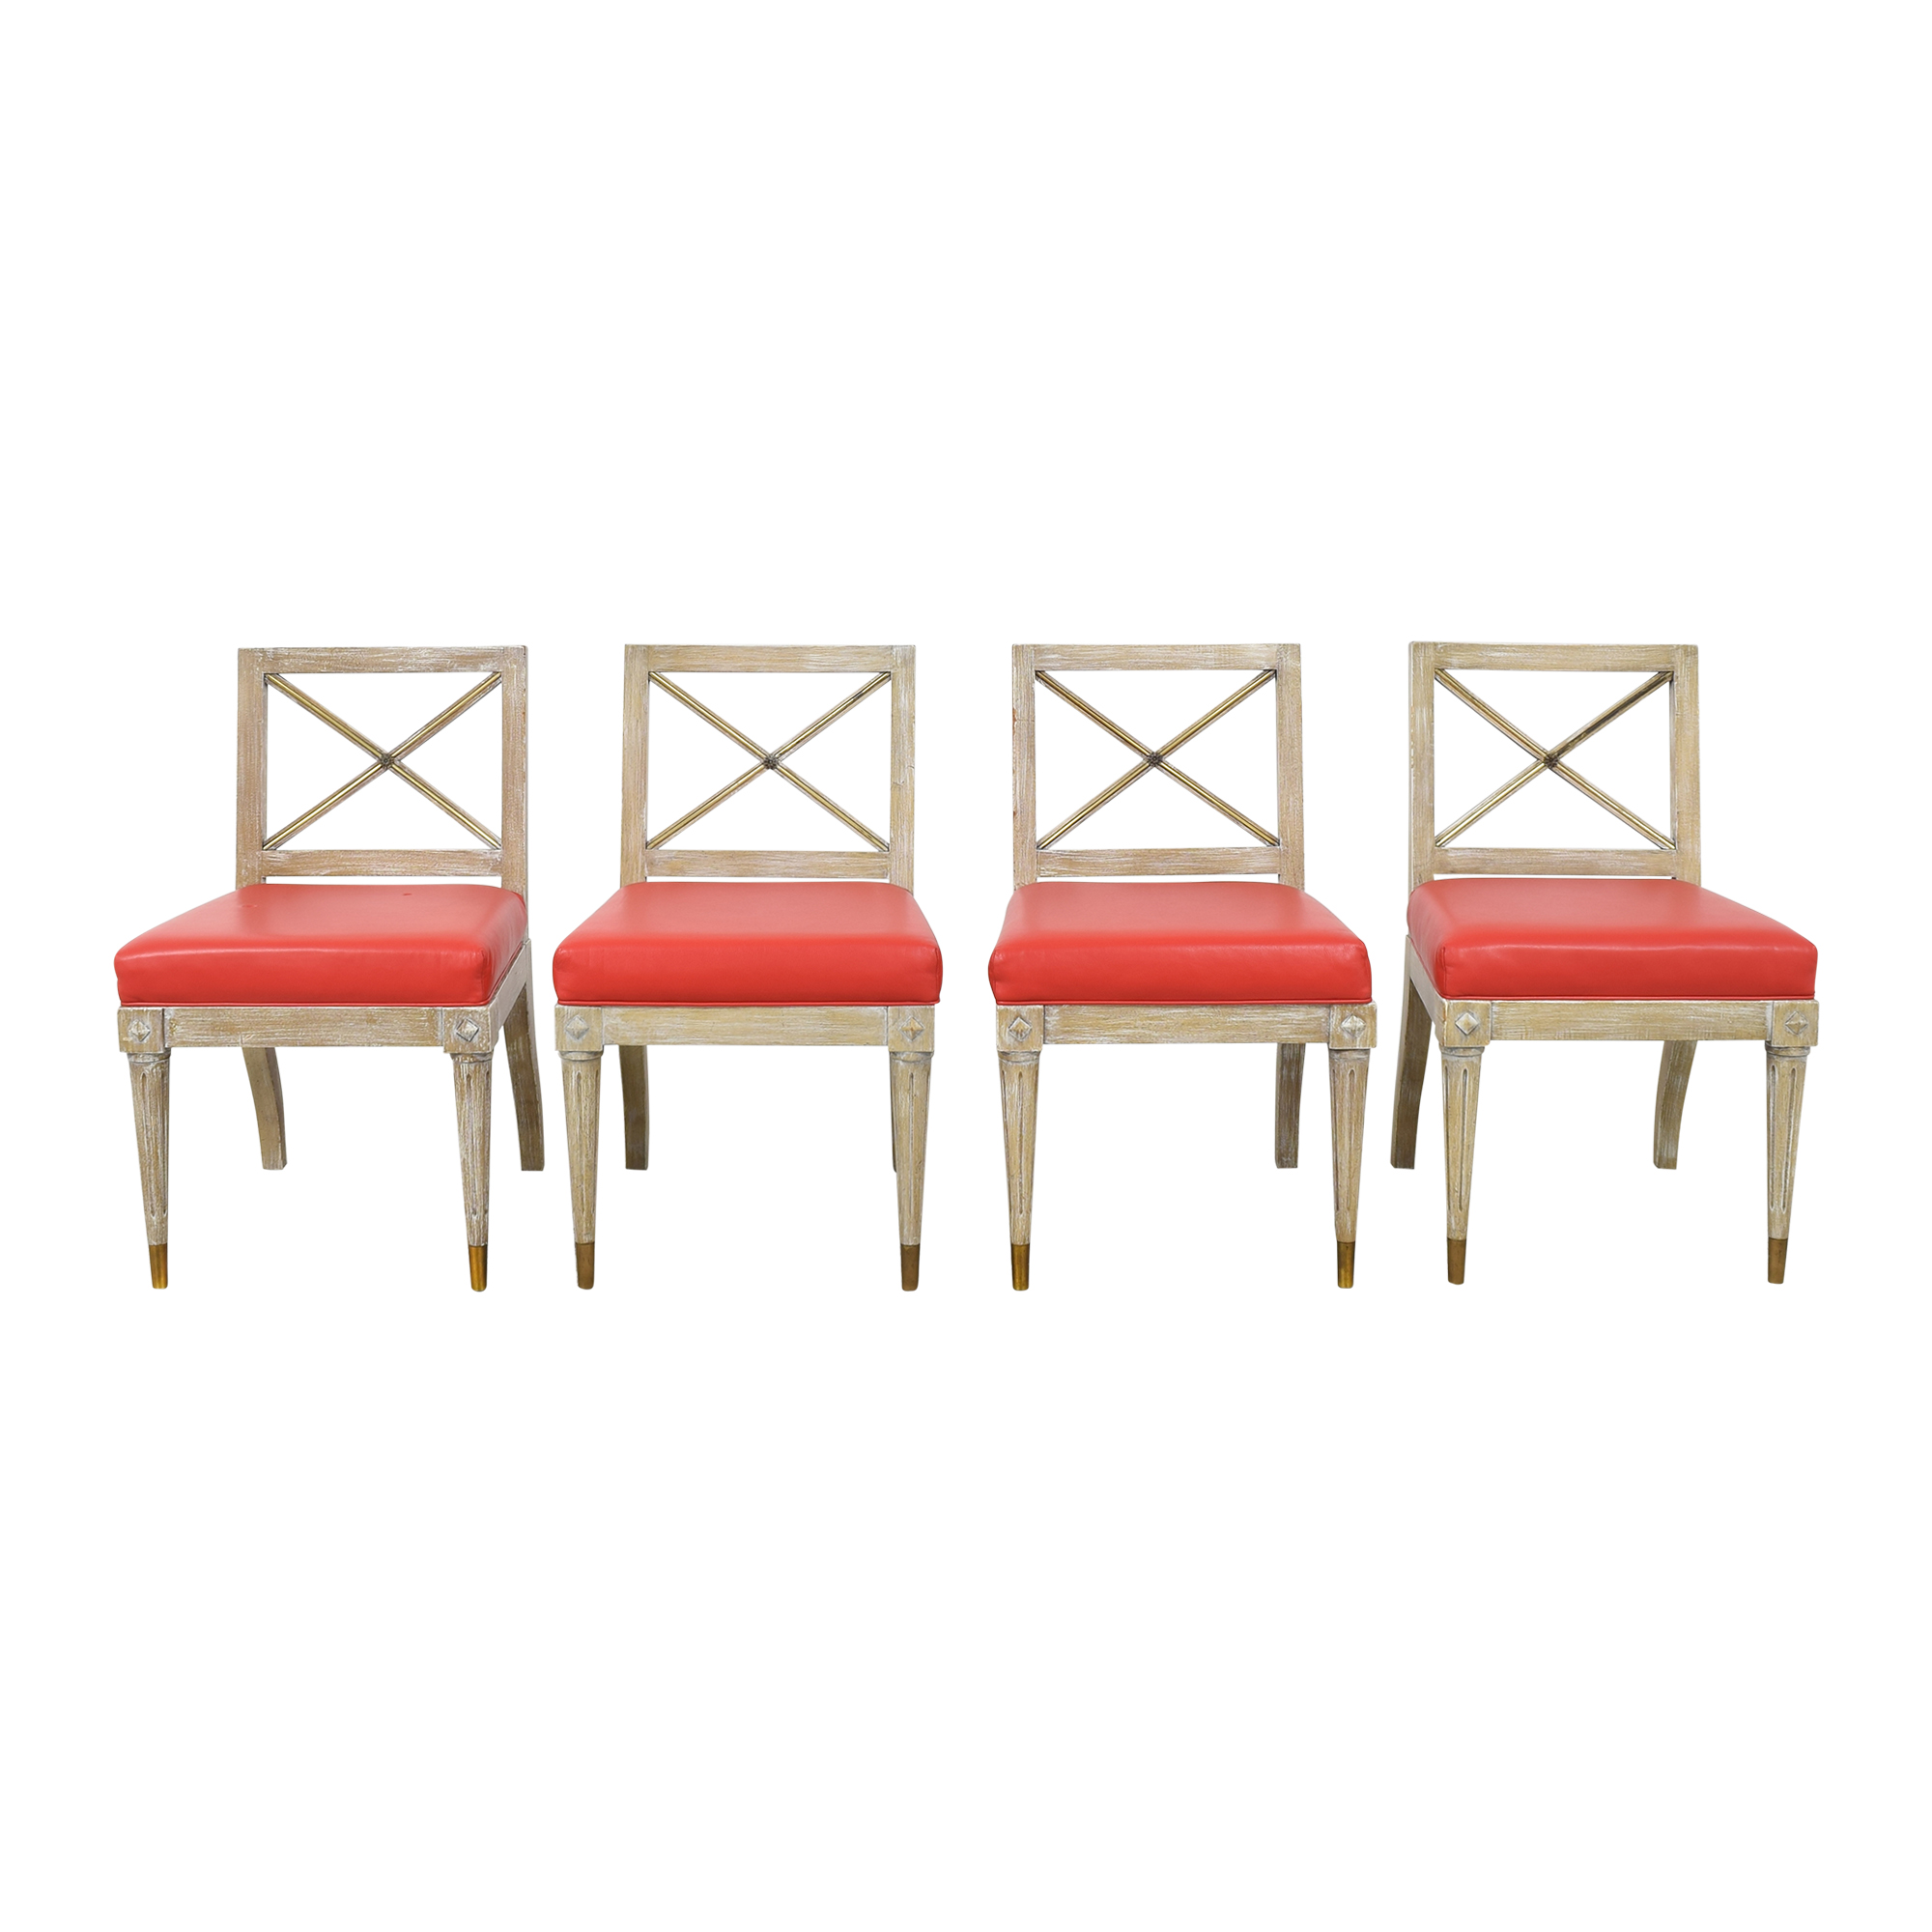 Regency Style Dining Side Chairs used